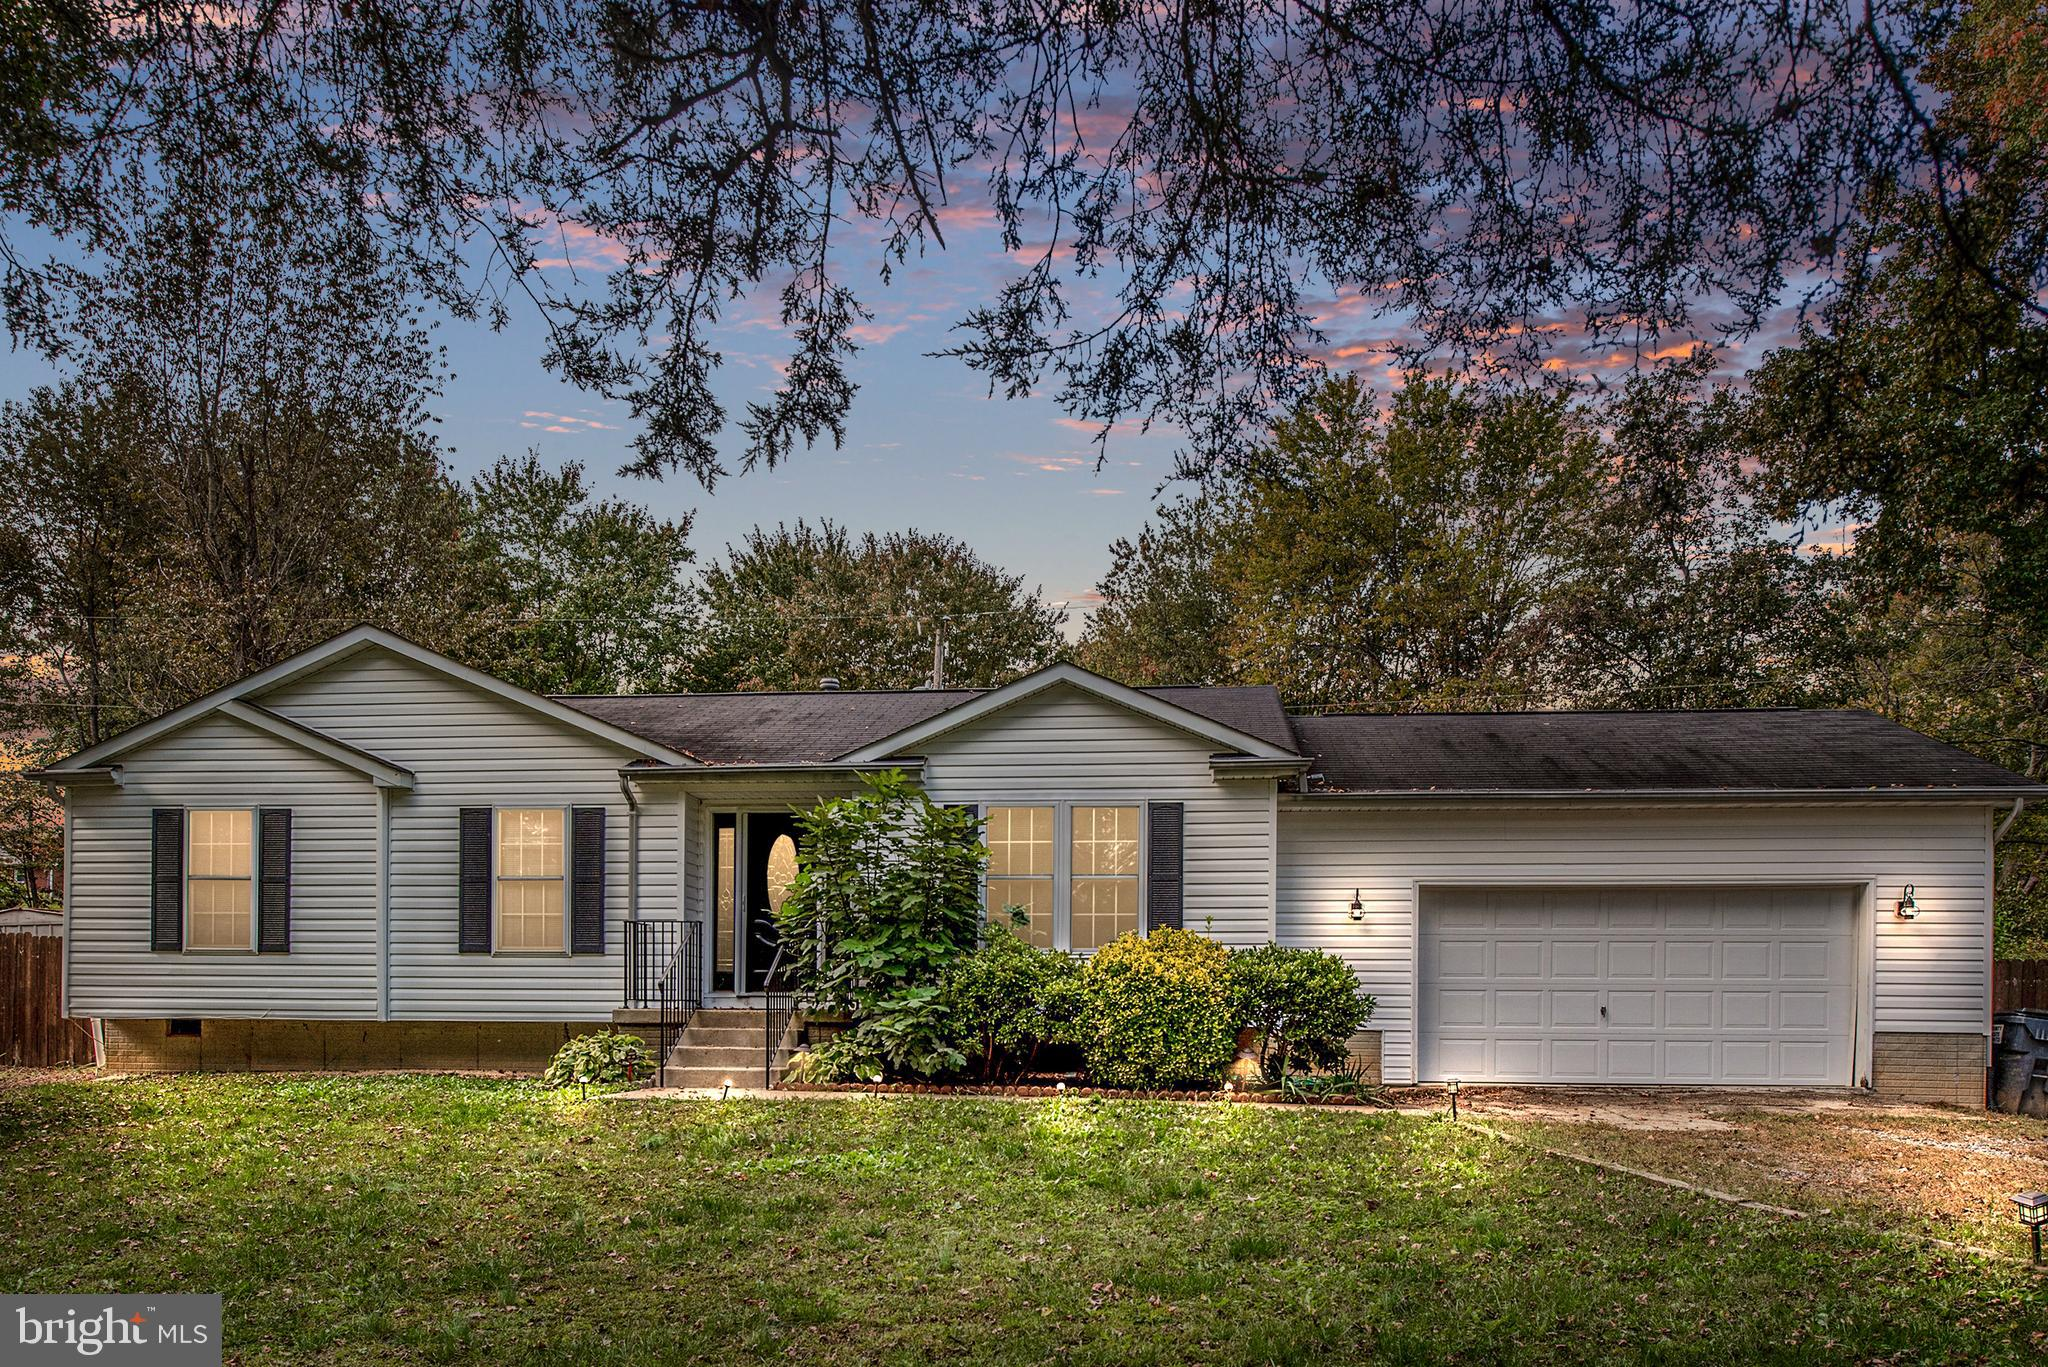 Charming 3 bedroom Ranch in Grafton Village on almost an acre! Oversized garage with a full bathroom